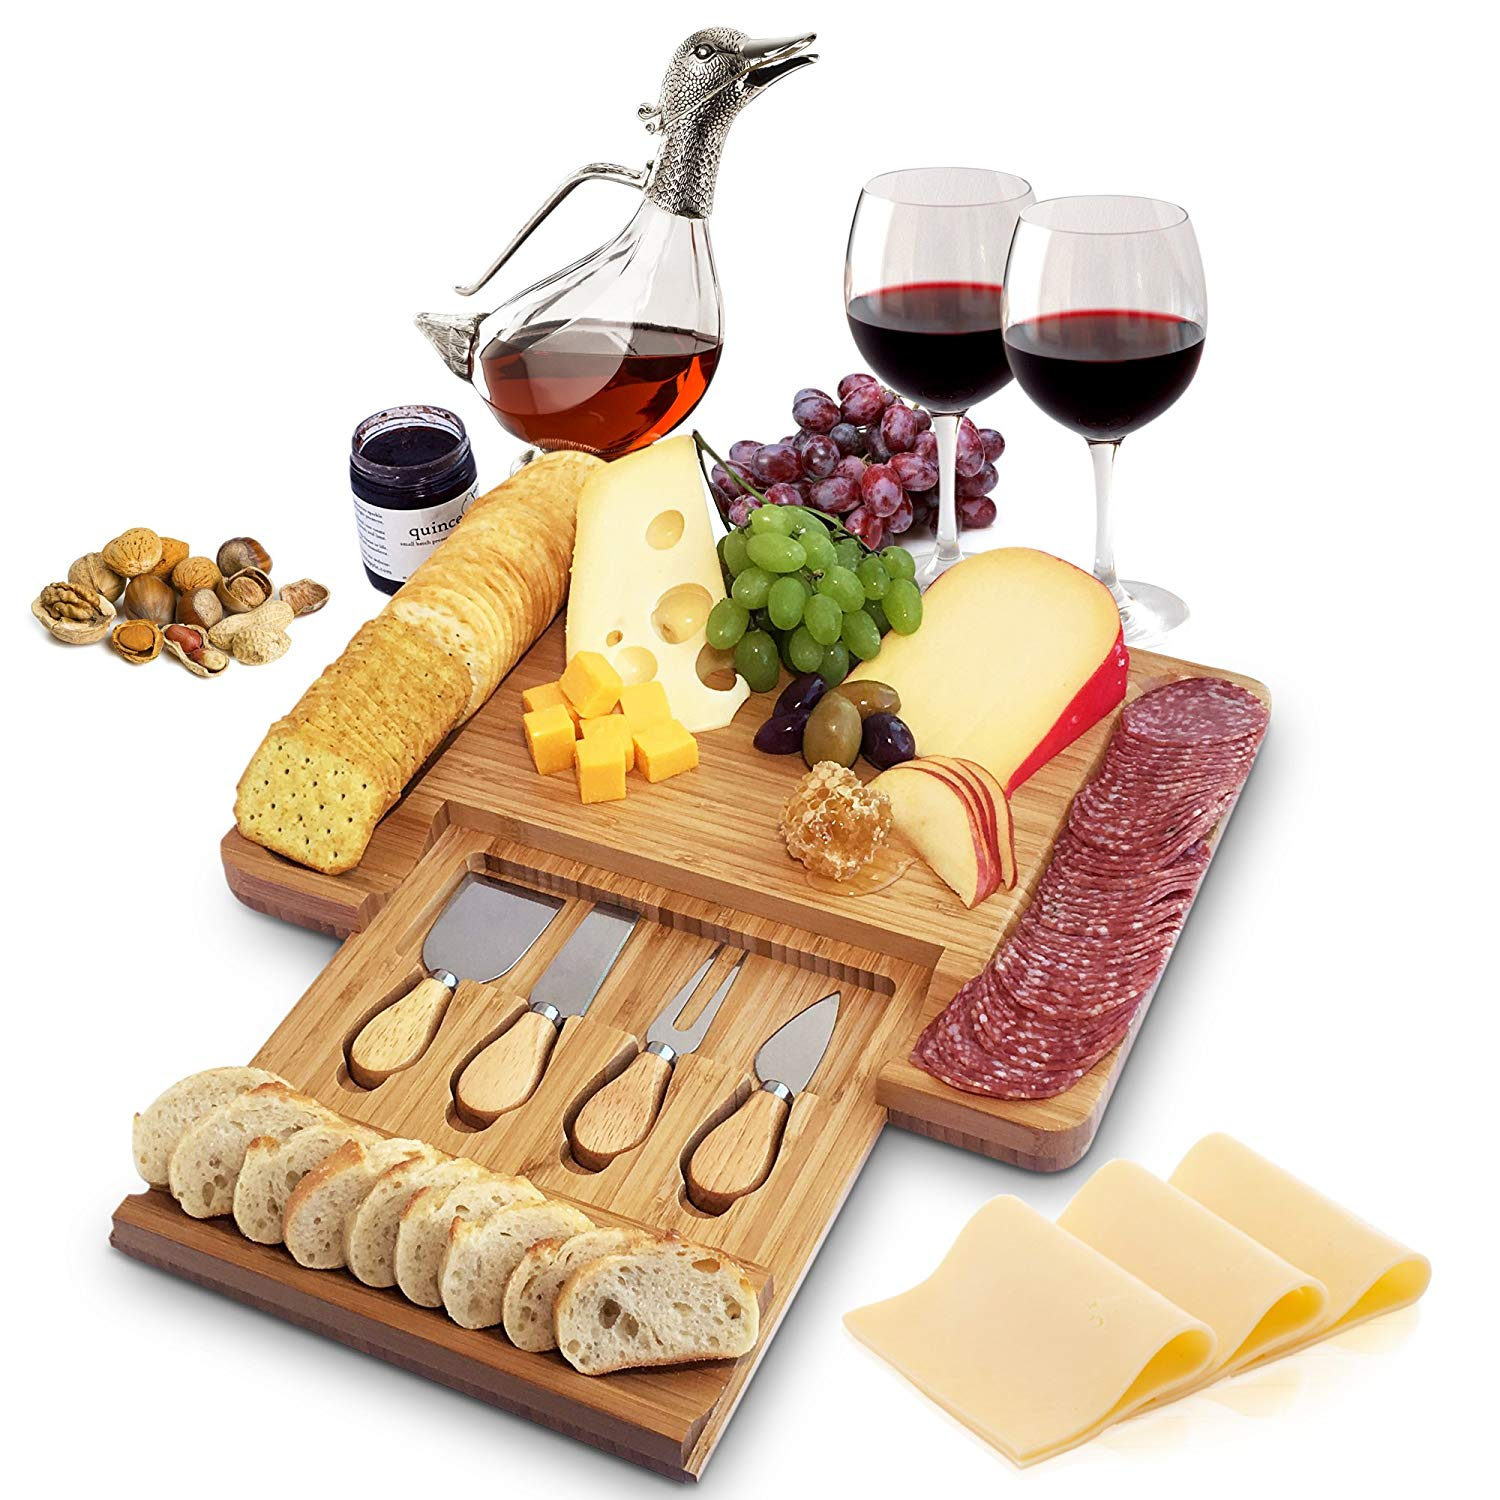 A Cheese And Charcuterie Board